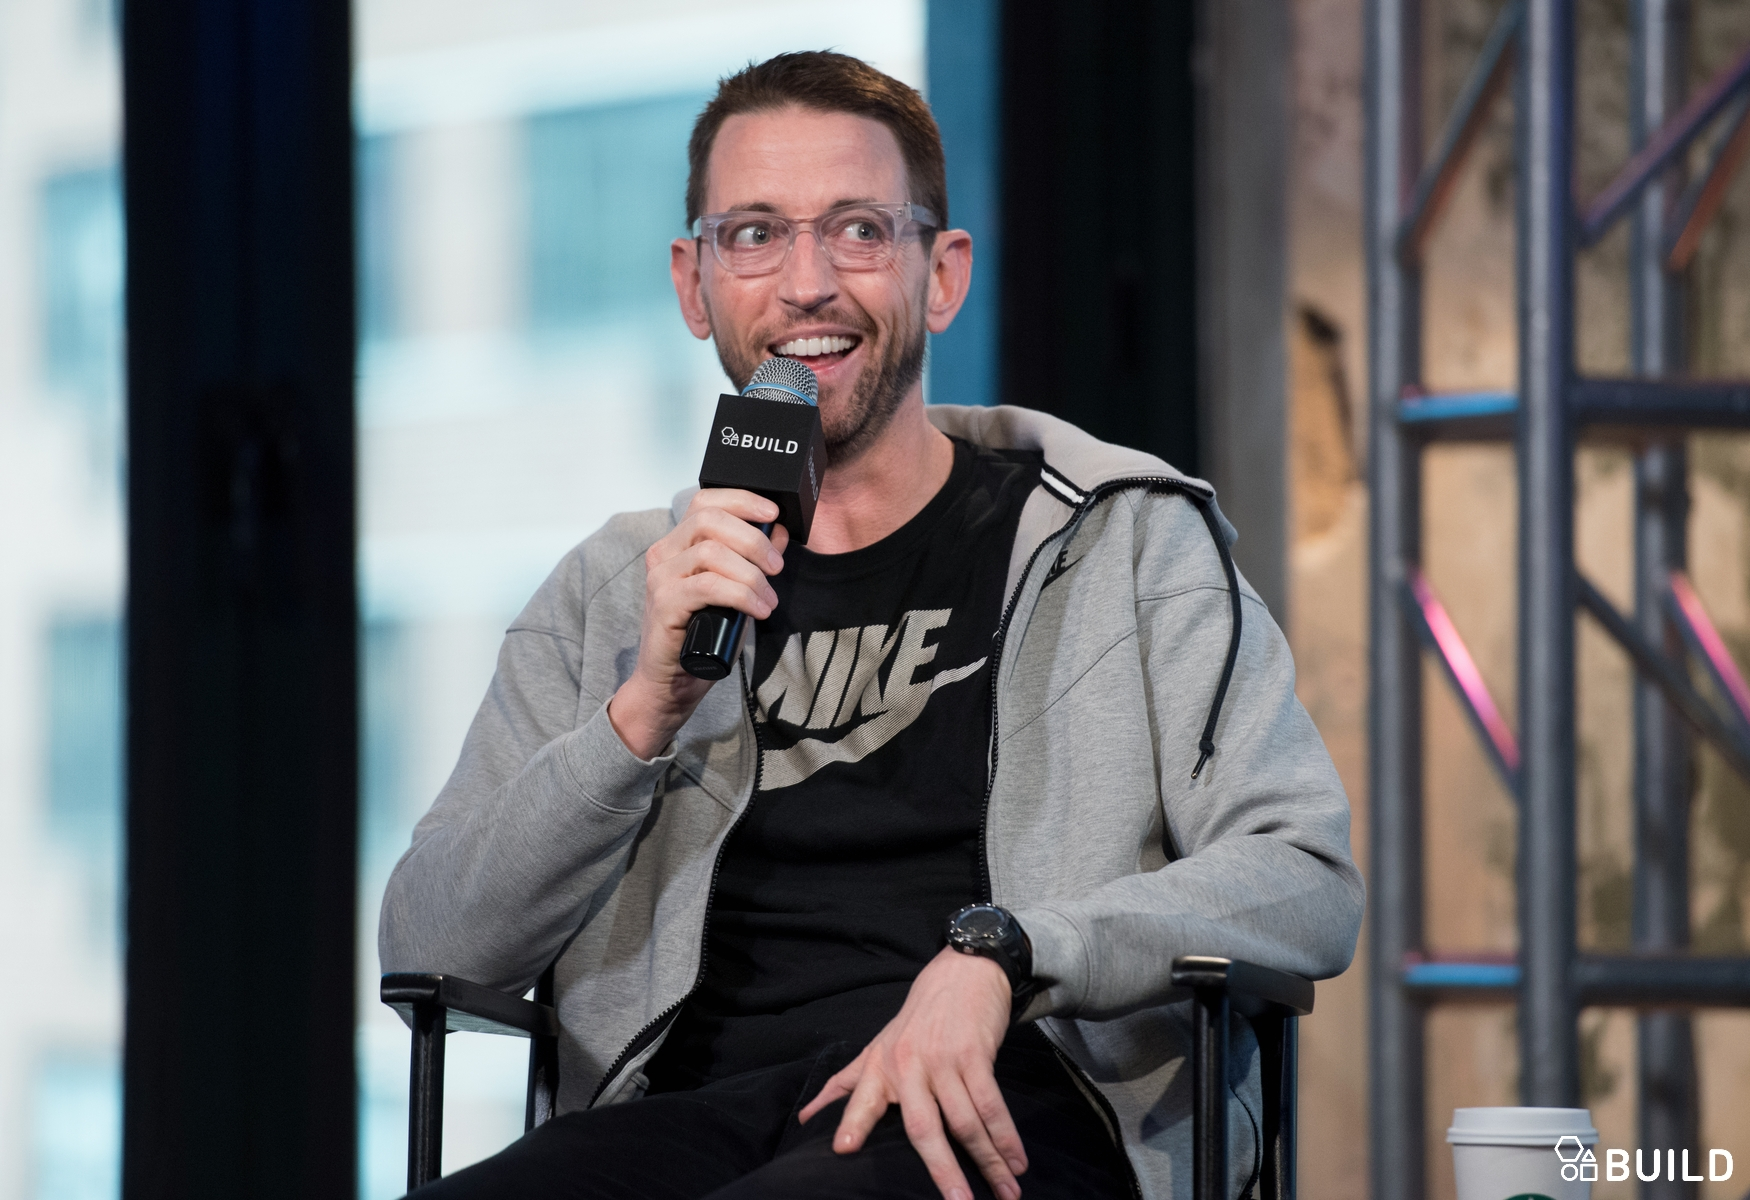 Neal Brennan visits AOL Hq for Build on March 1, 2016 in New York. Photos by Noam Galai